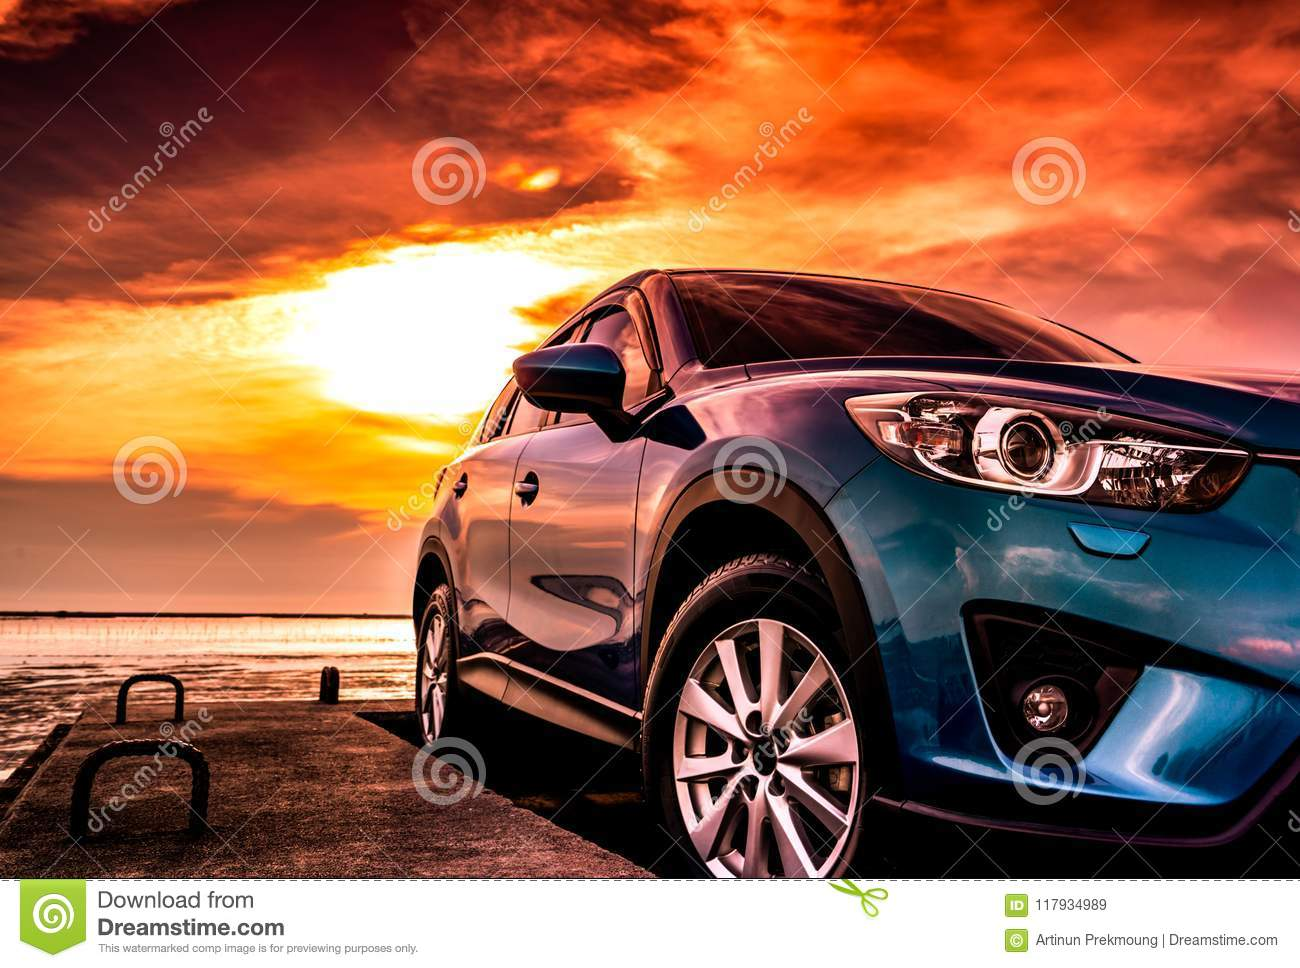 Blue compact SUV car with sport, modern, and luxury design parked on concrete road by the sea at sunset. Front view of beautiful